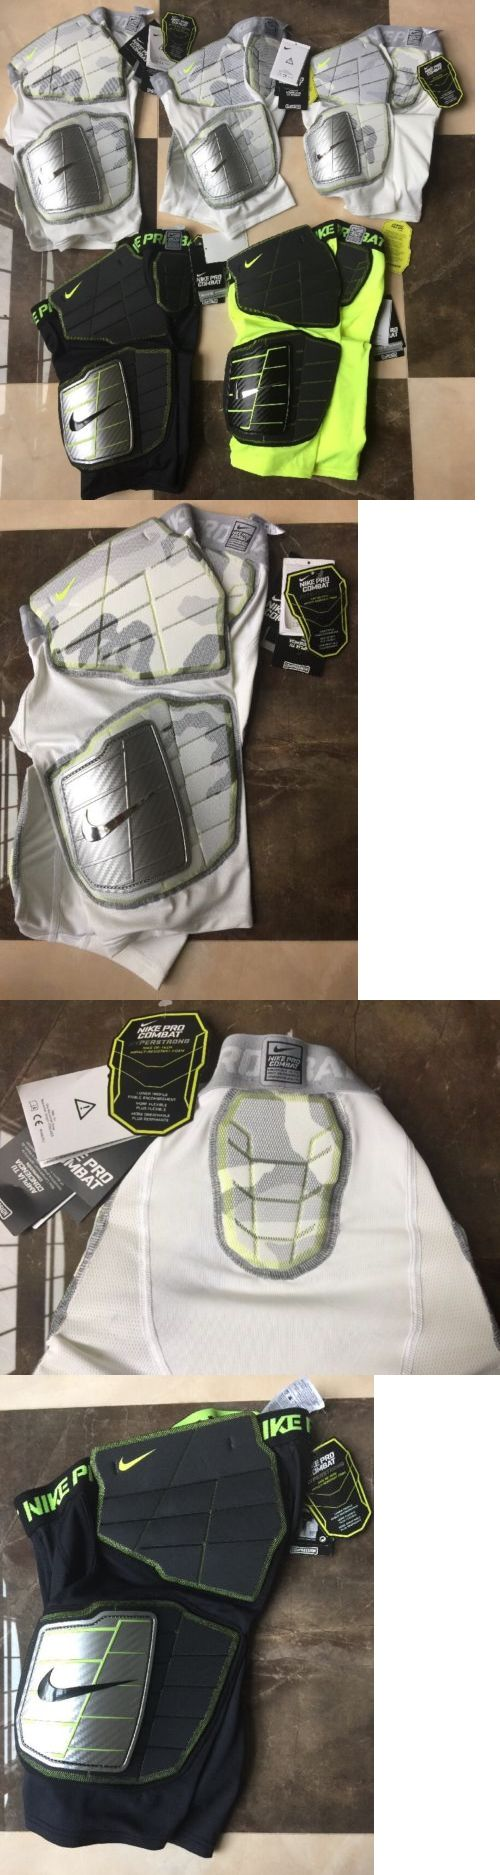 Protective Gear 21224: Nwt Nike Pro Combat Hard Plate Football Compression Shorts Youth Boys, L, S -> BUY IT NOW ONLY: $34 on eBay!